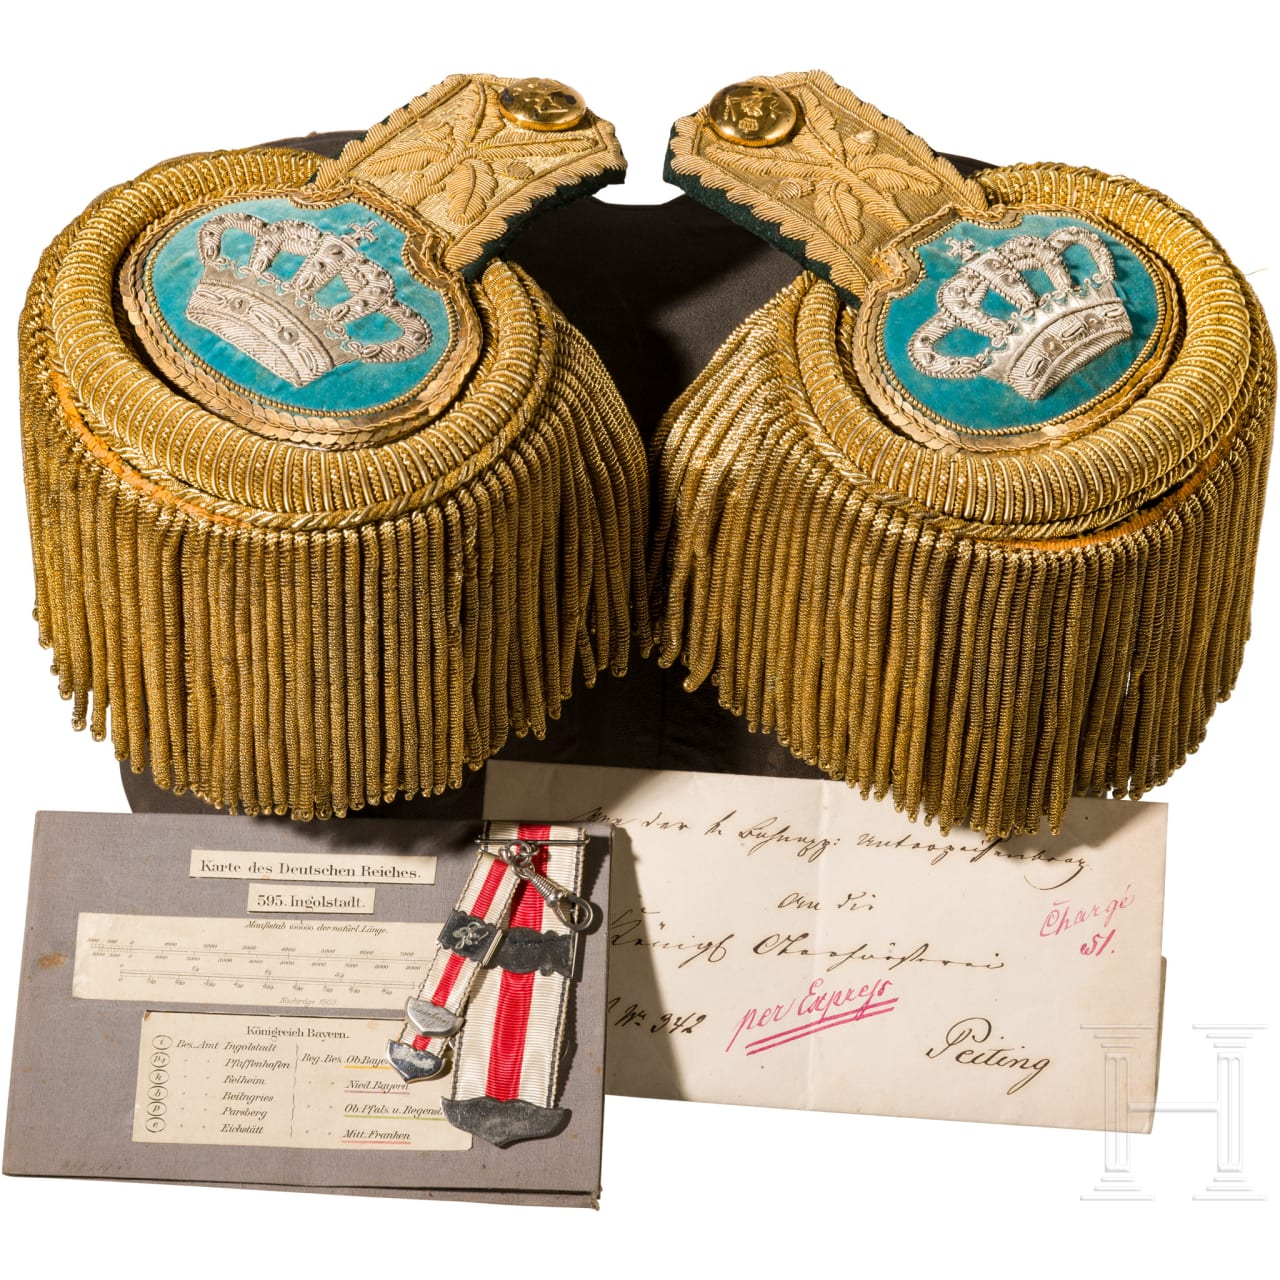 A pair of epaulettes for higher forest officials, 1886 - 1912